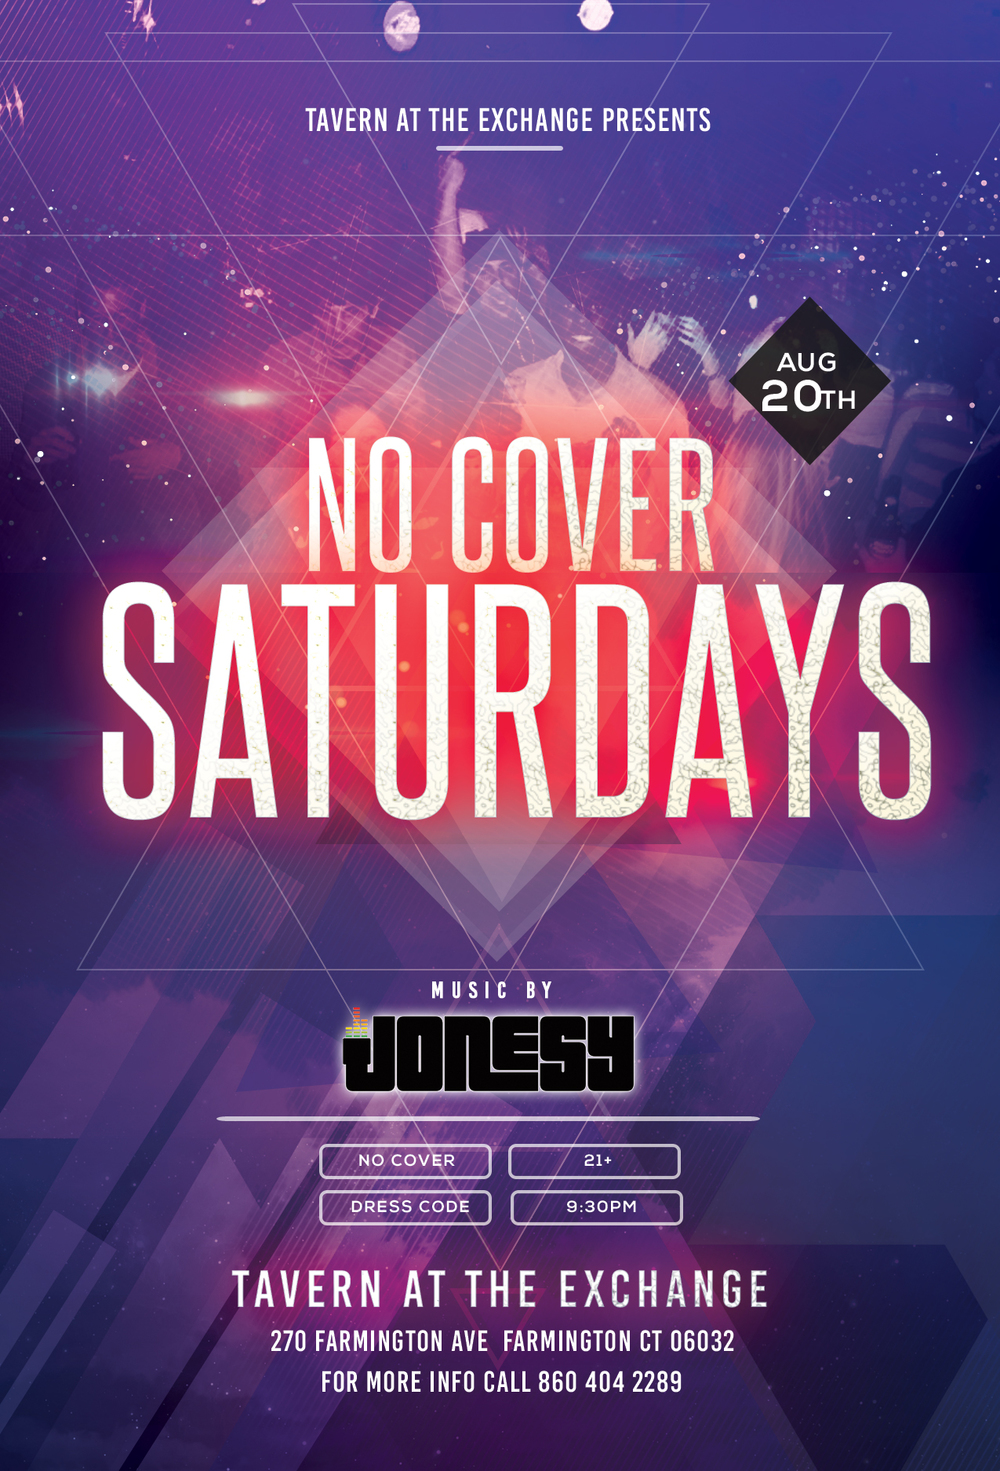 SATURDAY, AUGUST 20TH JOIN US AT TAVERN AT THE EXCHANGE IN FARMINGTON, CT FOR 'NO COVER SATURDAYS' WITH MUSIC BY YOURS TRULY 9:30PM - CLOSE! DRESS TO IMPRESS. NO COVER. 21+. SEE YOU ALL THERE!